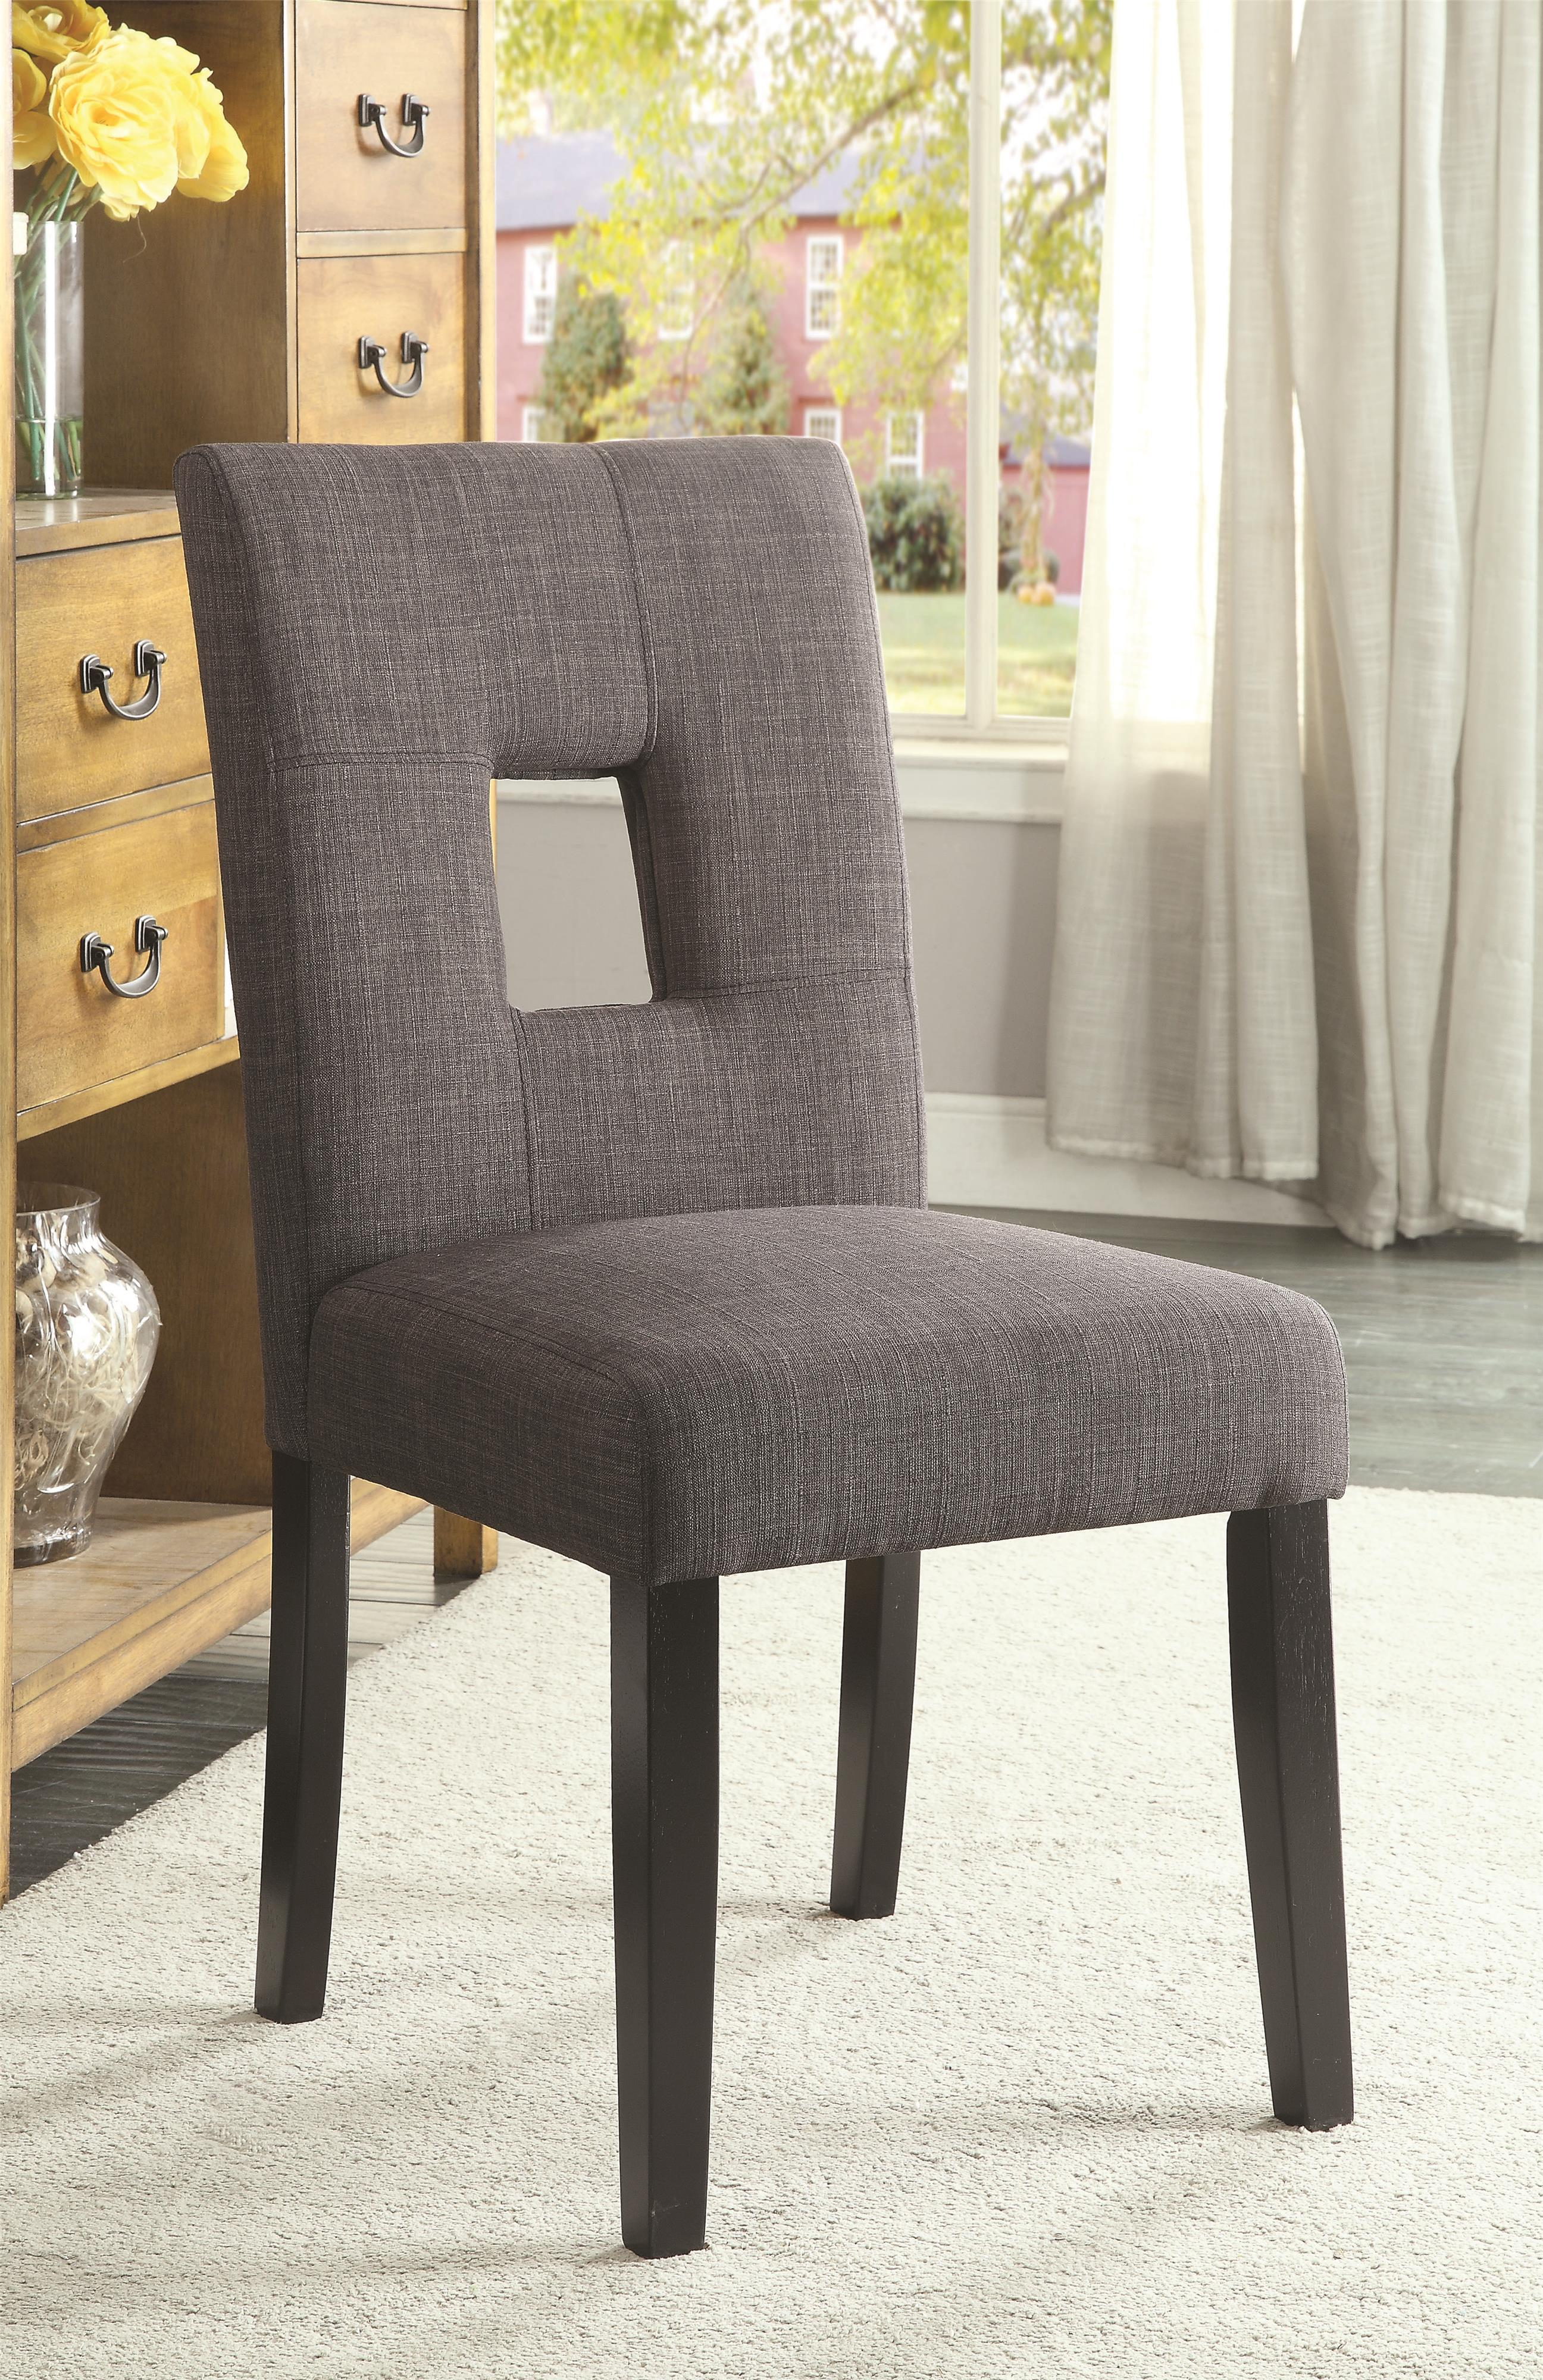 Andenne Dining Side Chair by Coaster at Lapeer Furniture & Mattress Center